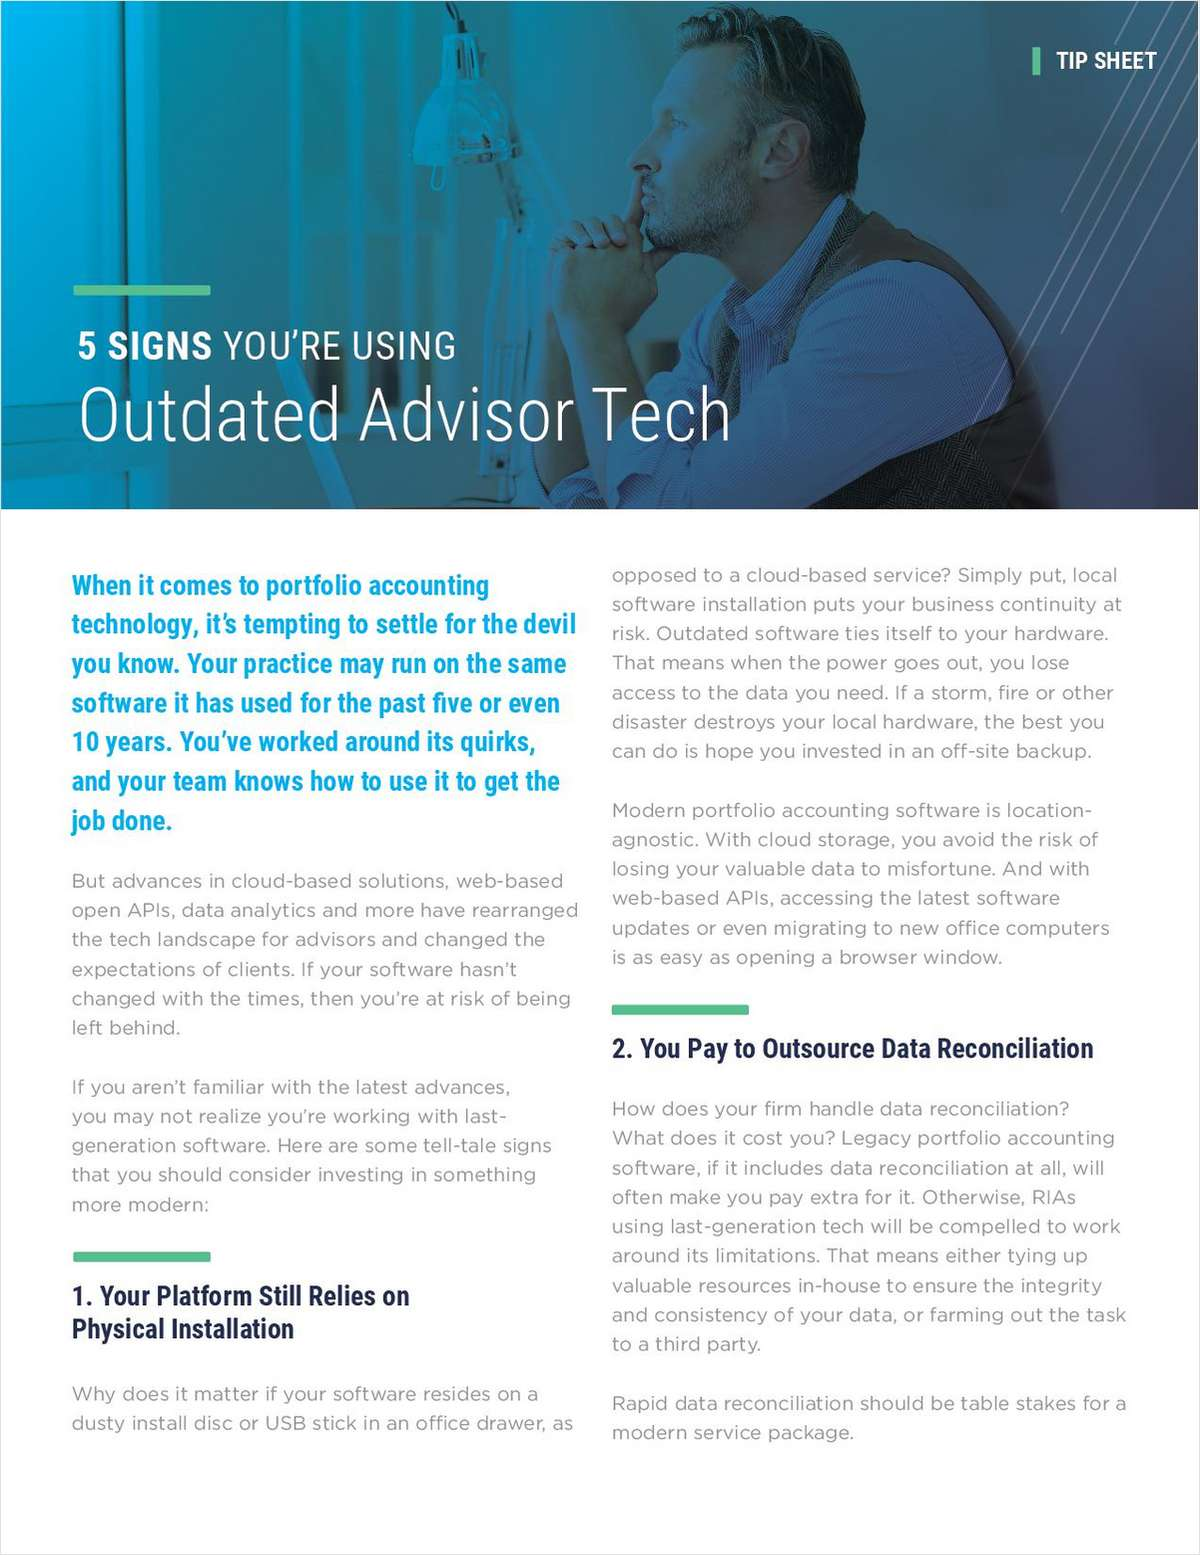 5 Signs You're Using Outdated Advisor Tools